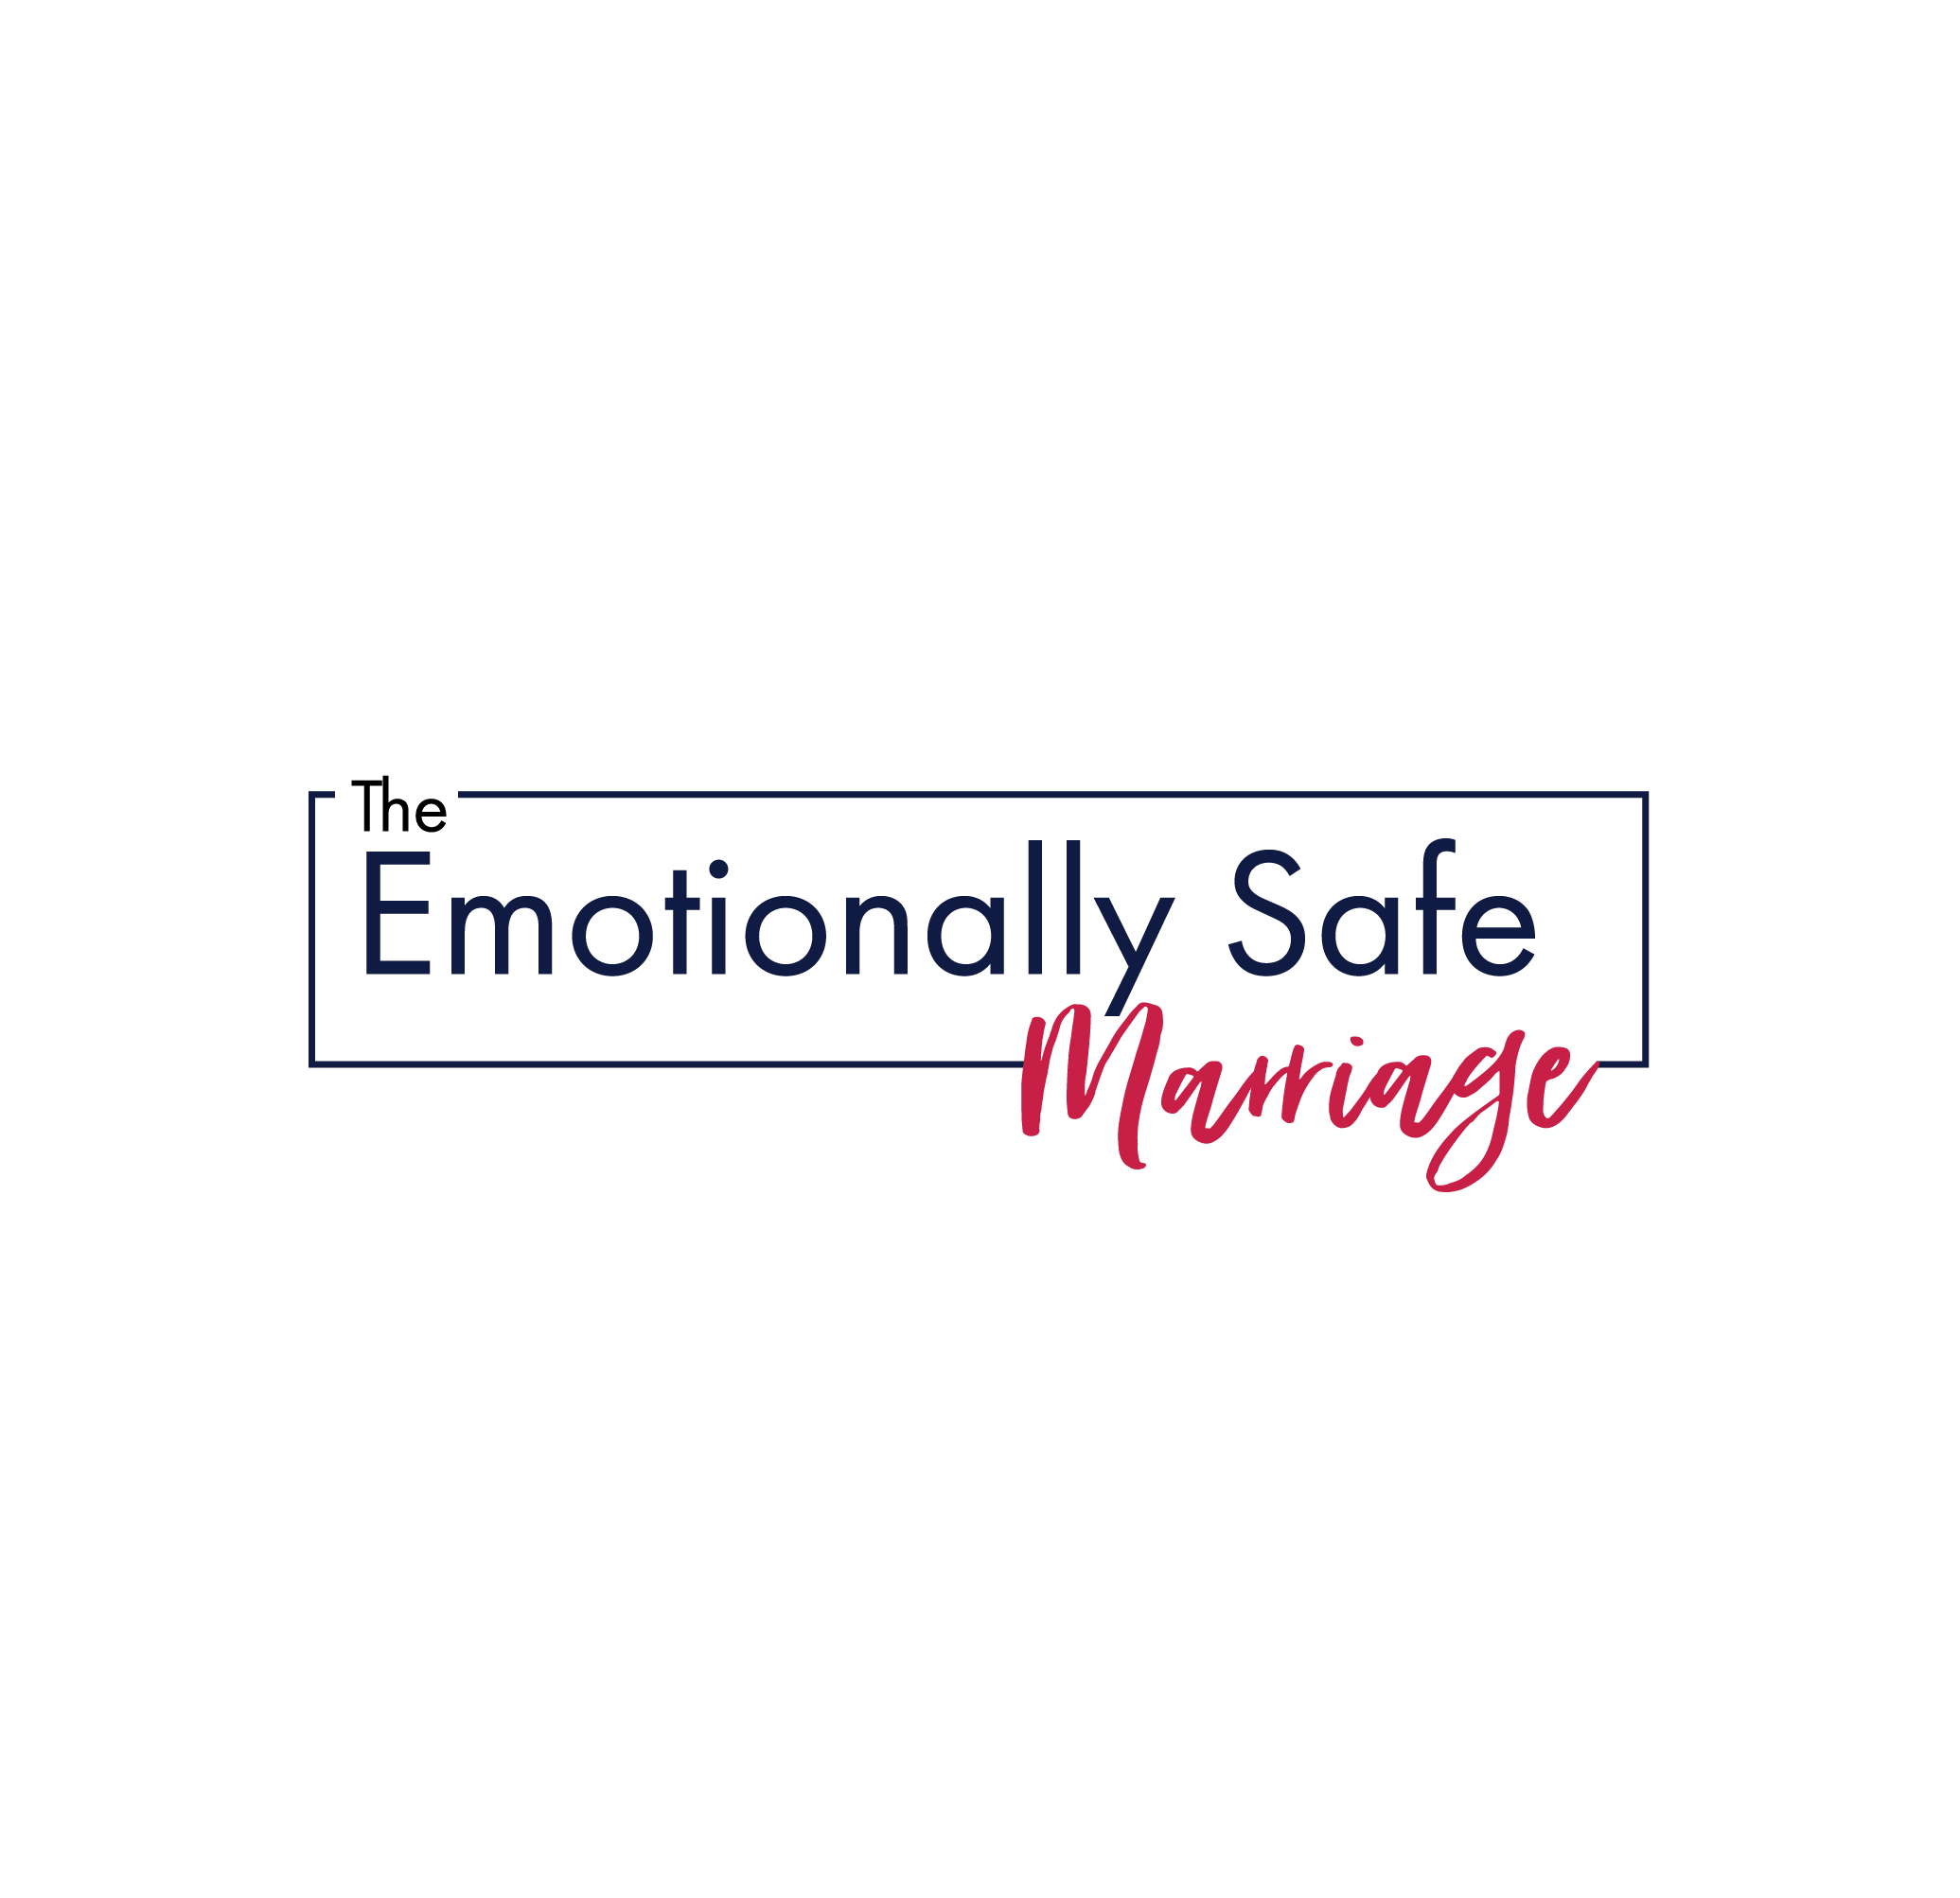 Emotionally Safe Marriage (2).png